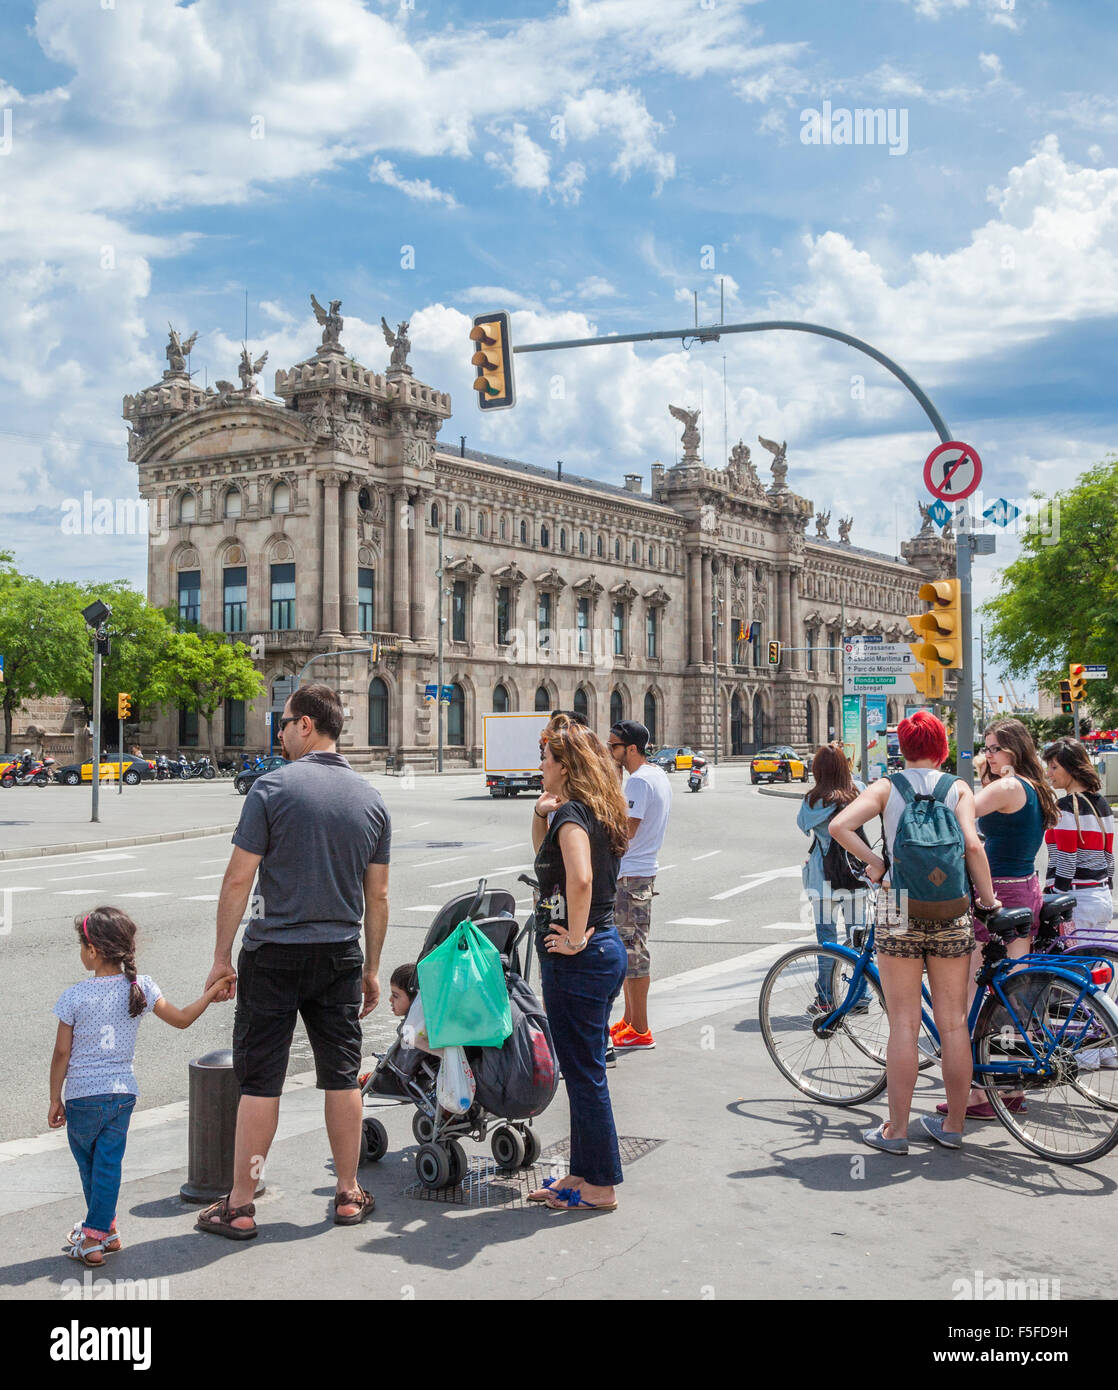 Spain, Catatonia, Barcelona, Port Vell, tourists at Portal des Pau with view of the Aduana building - Stock Image